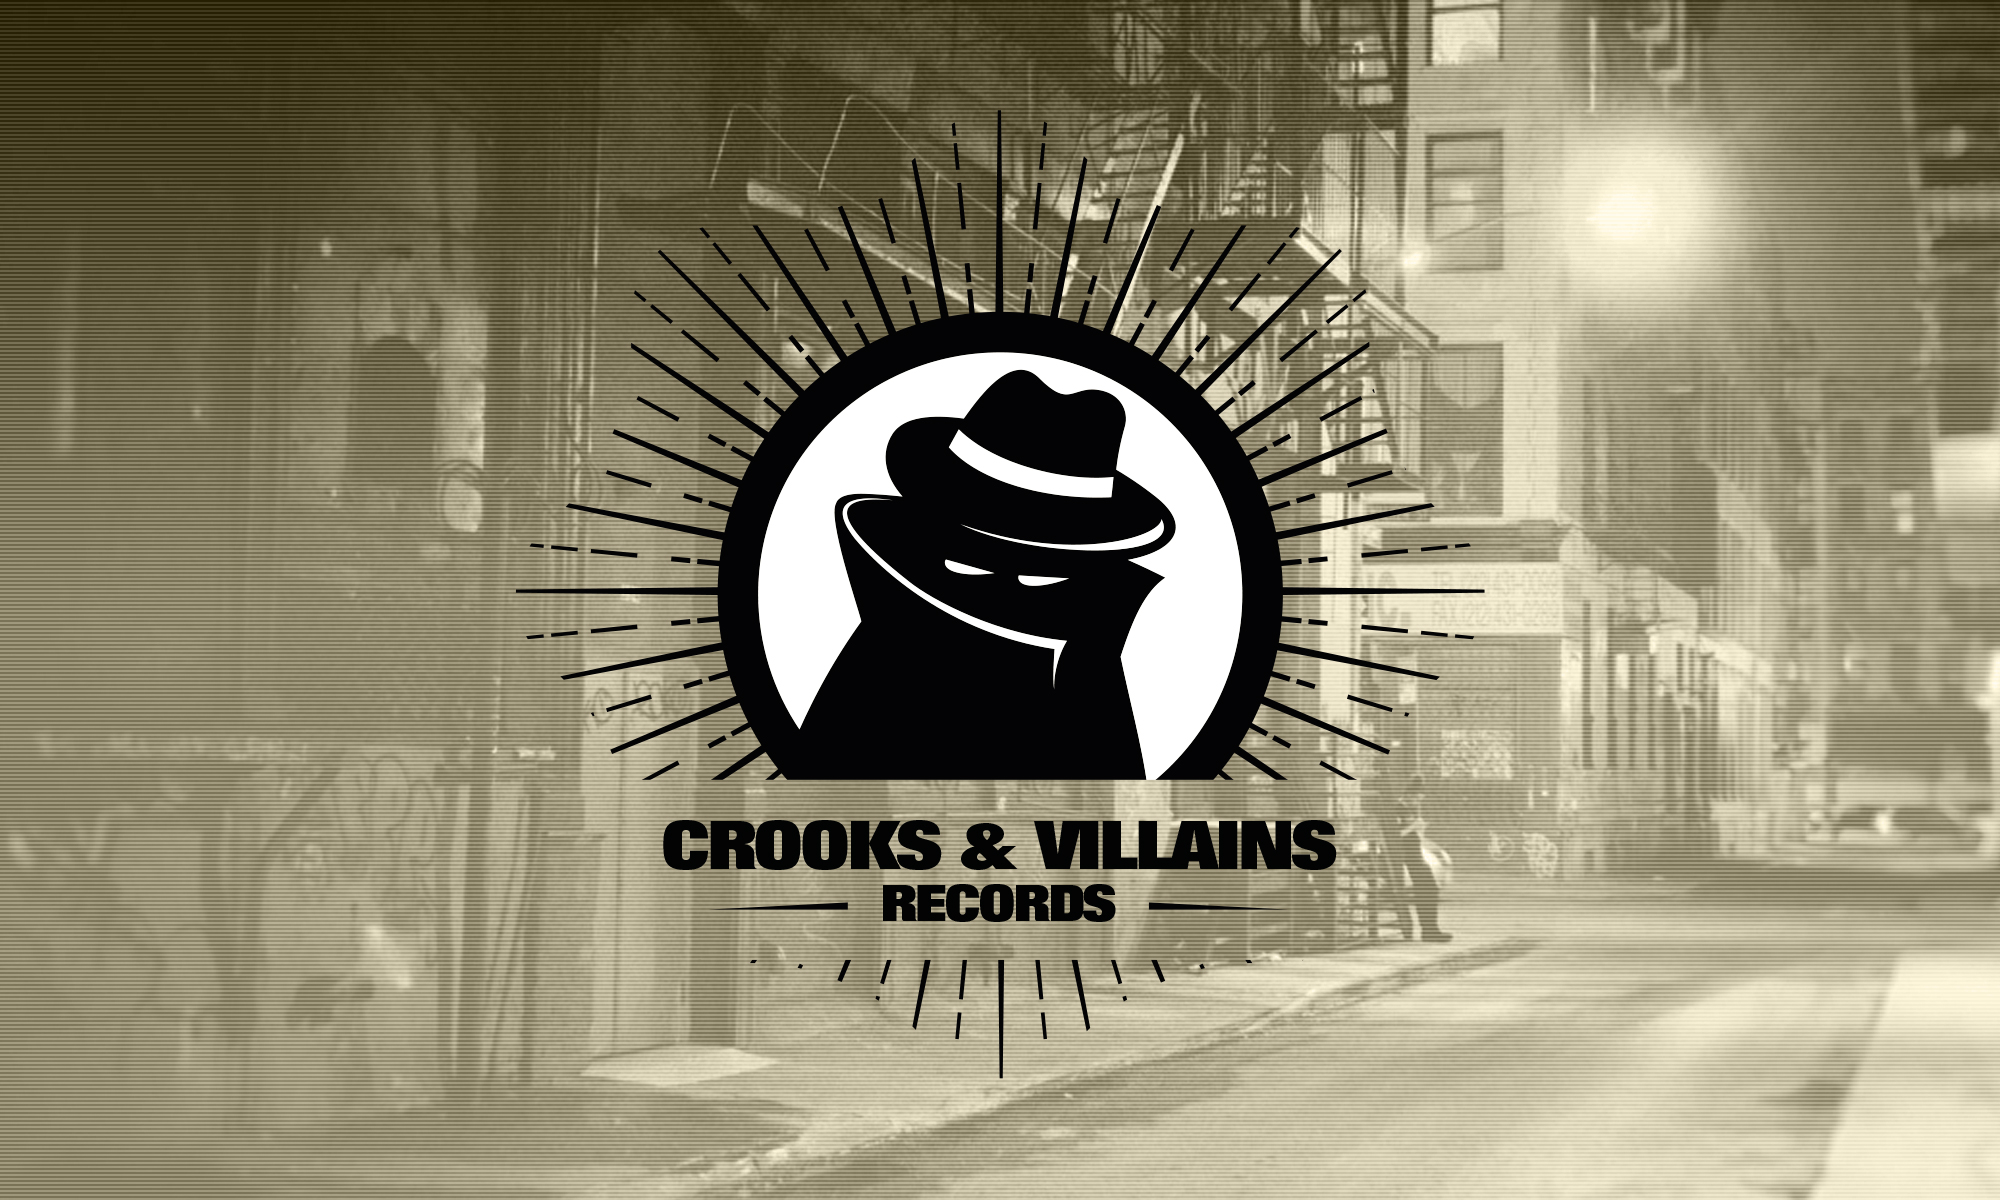 Crooks & Villains Records